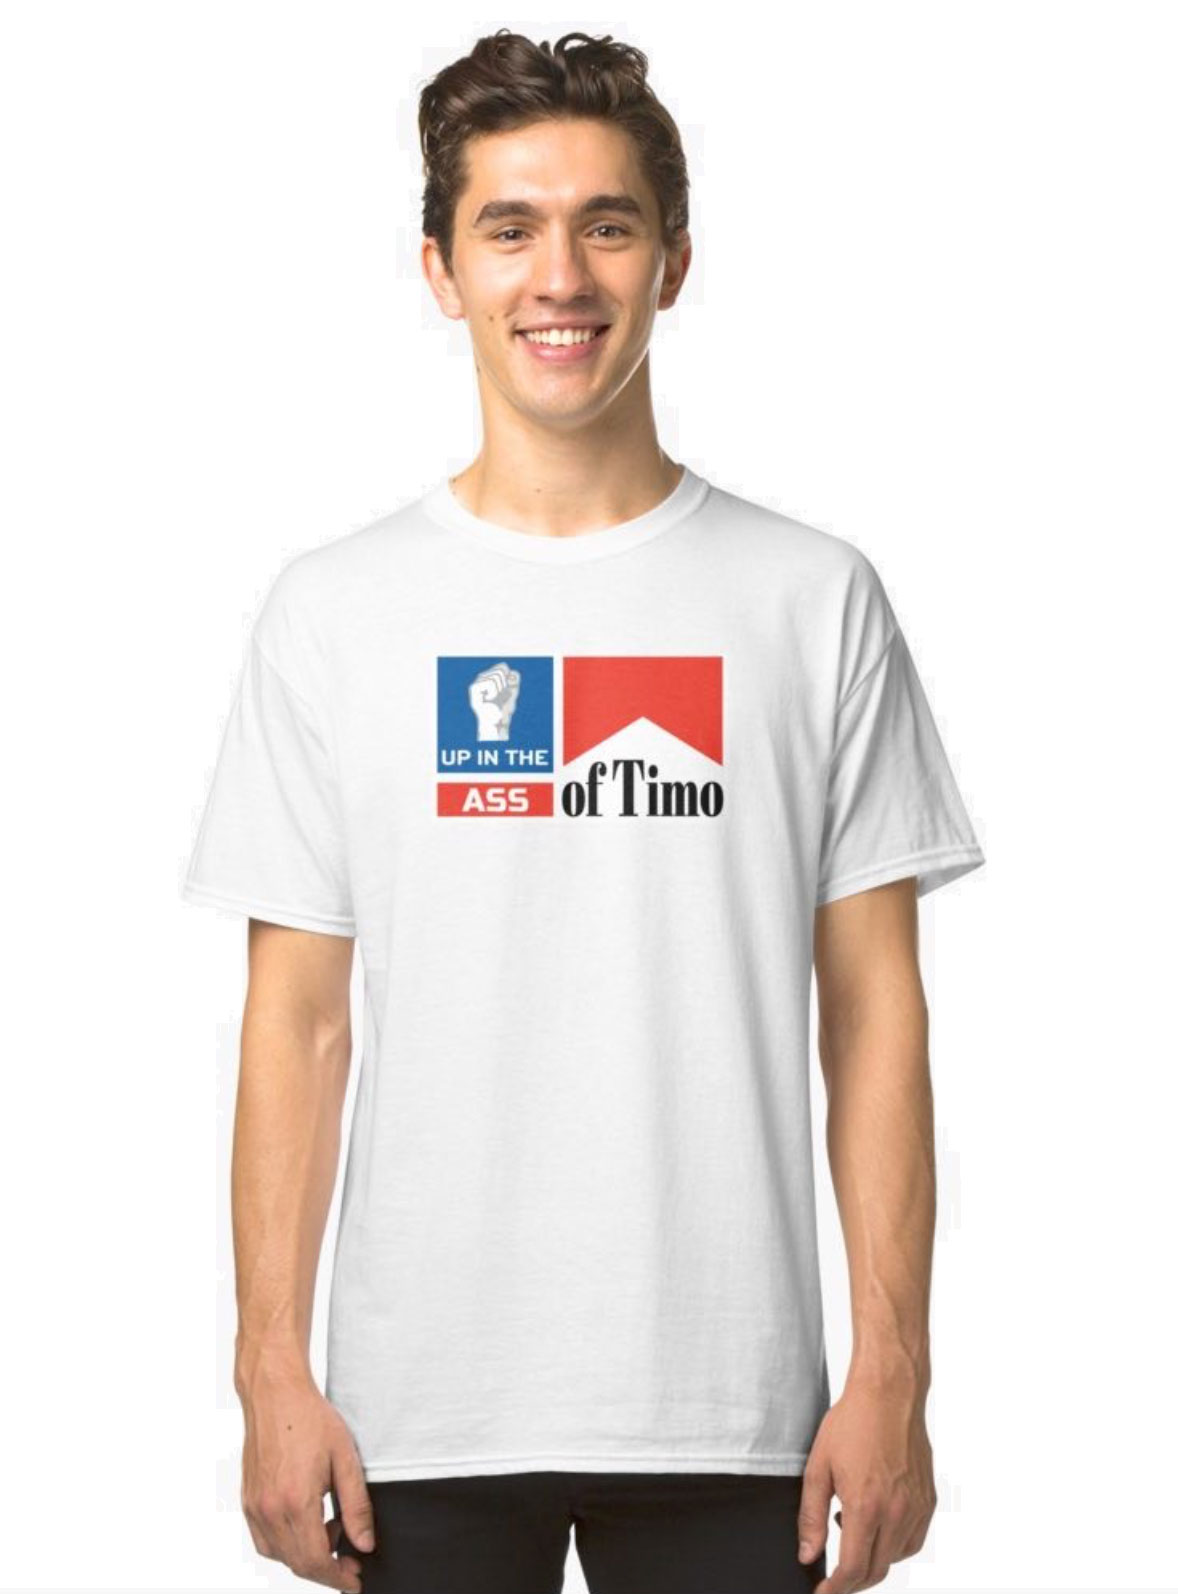 Up in the Ass of Timo T-shirt